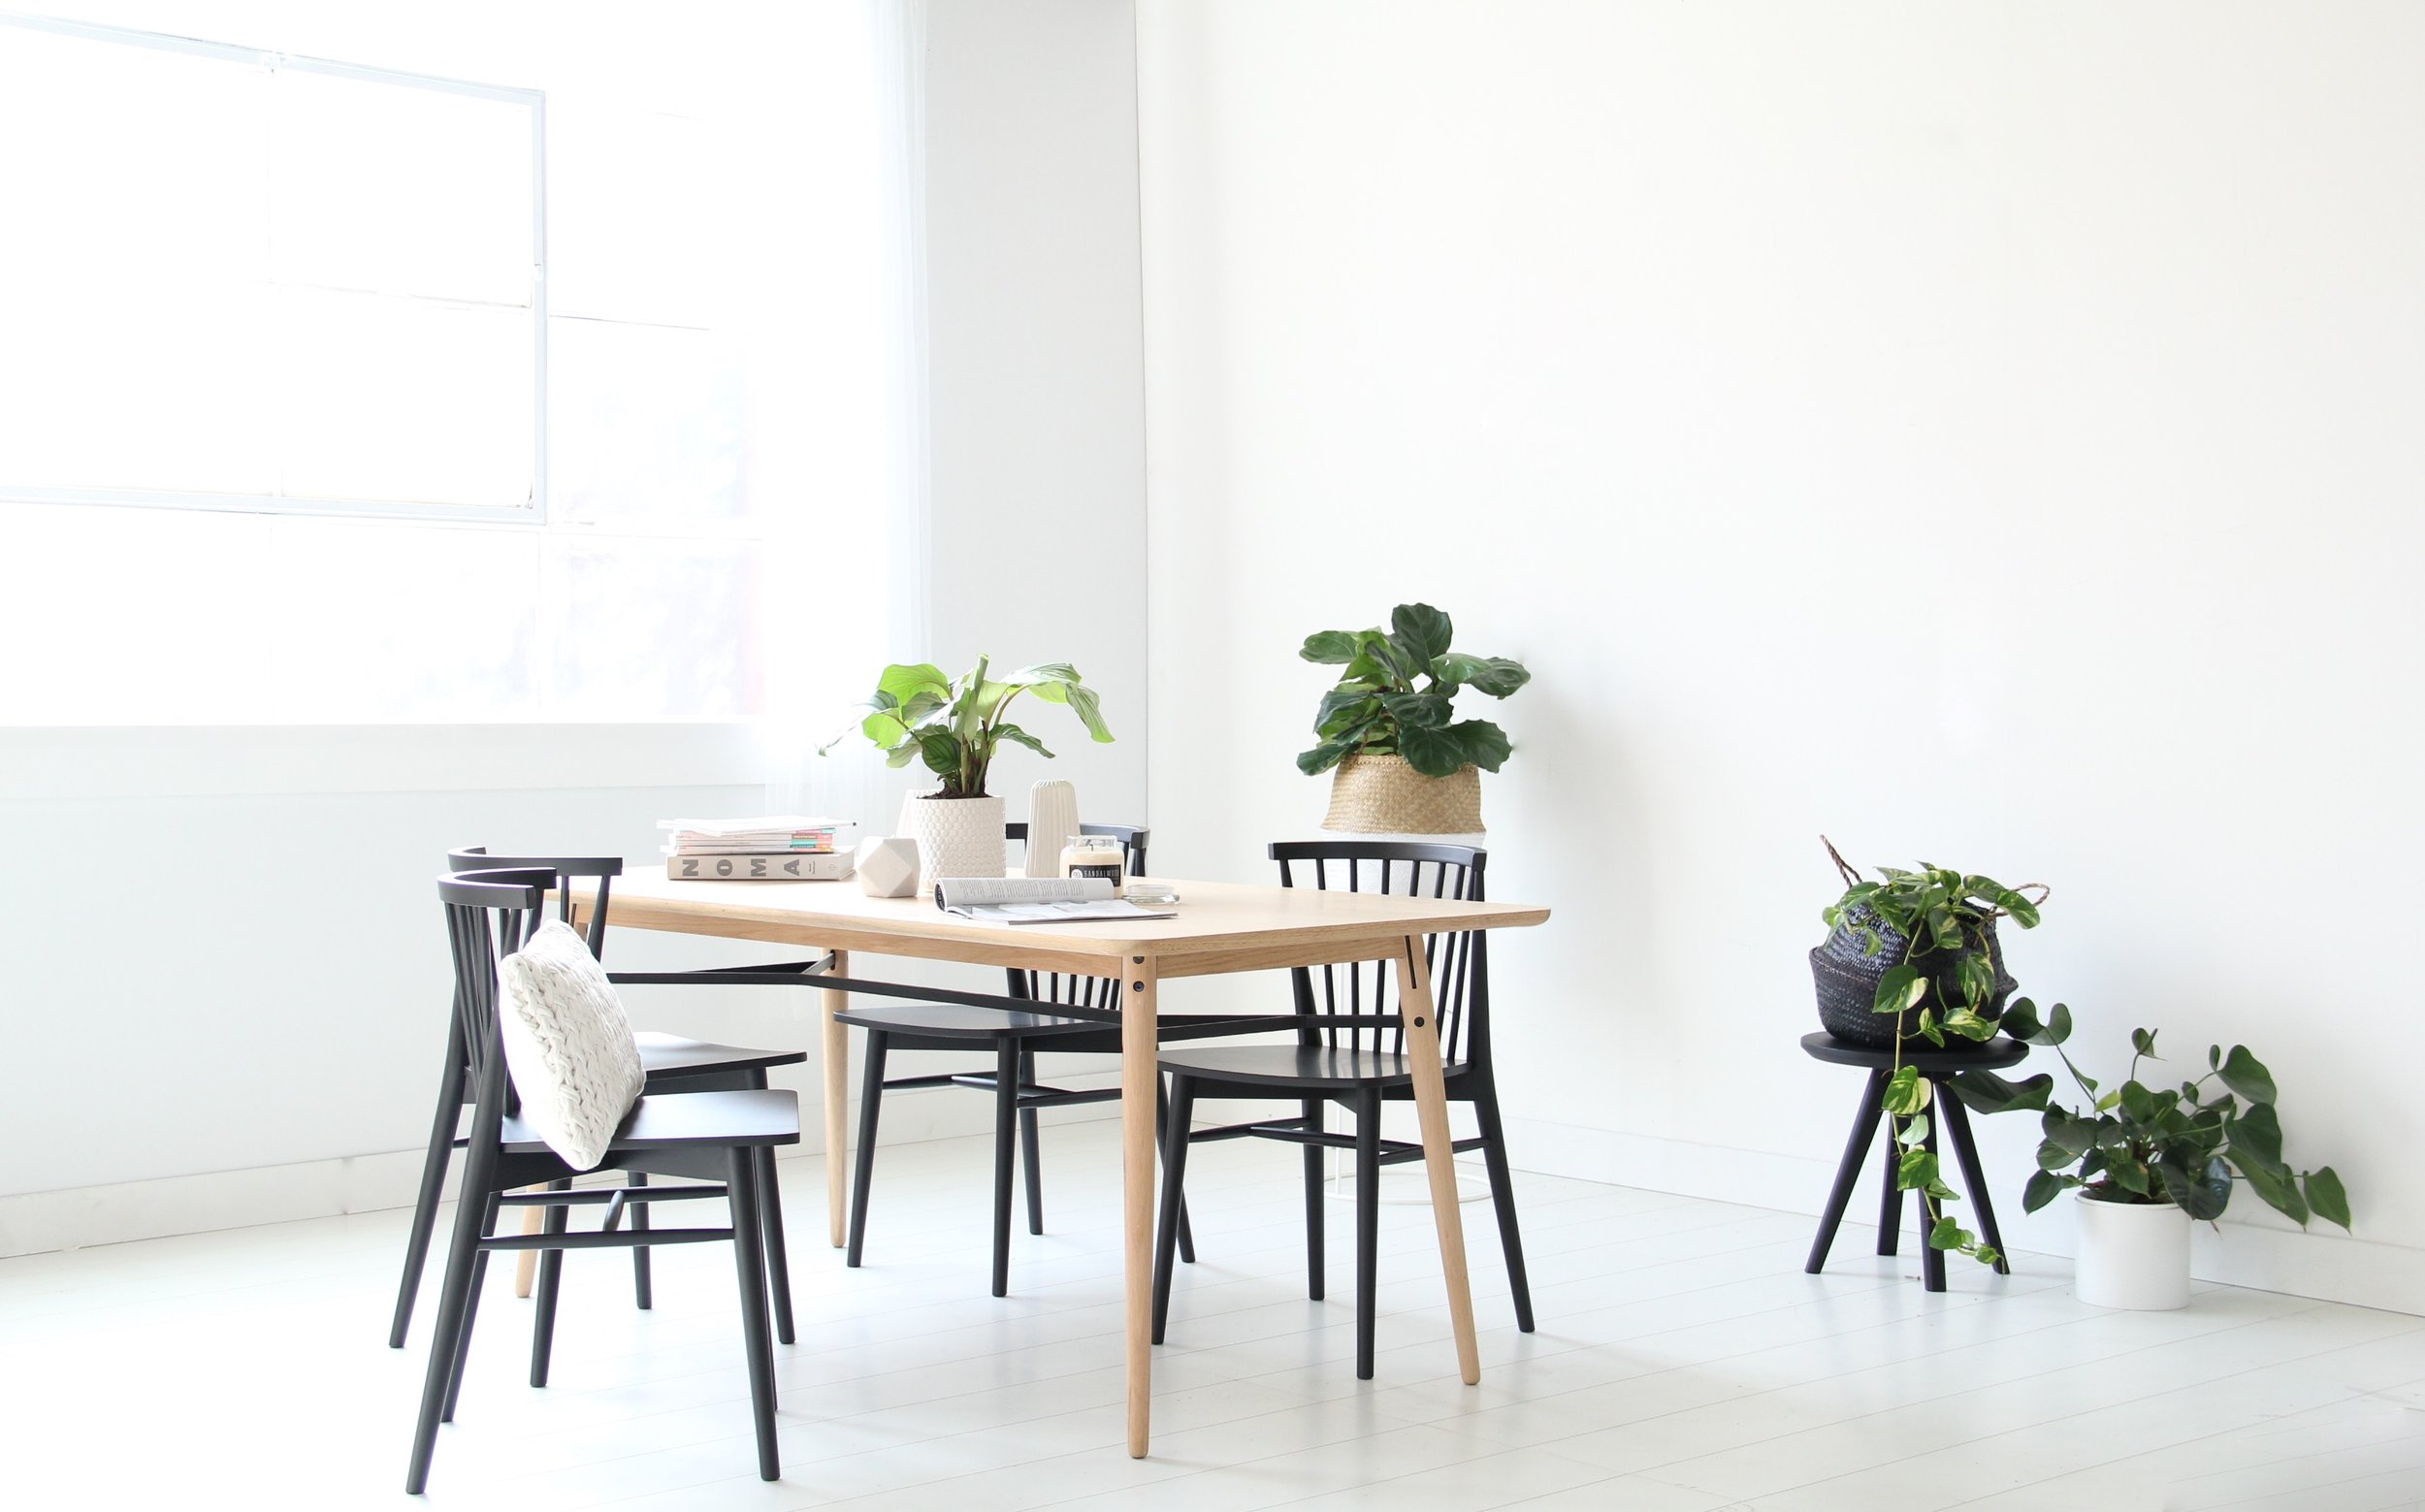 34. Zeus table + Charcoal requin chairs.JPG